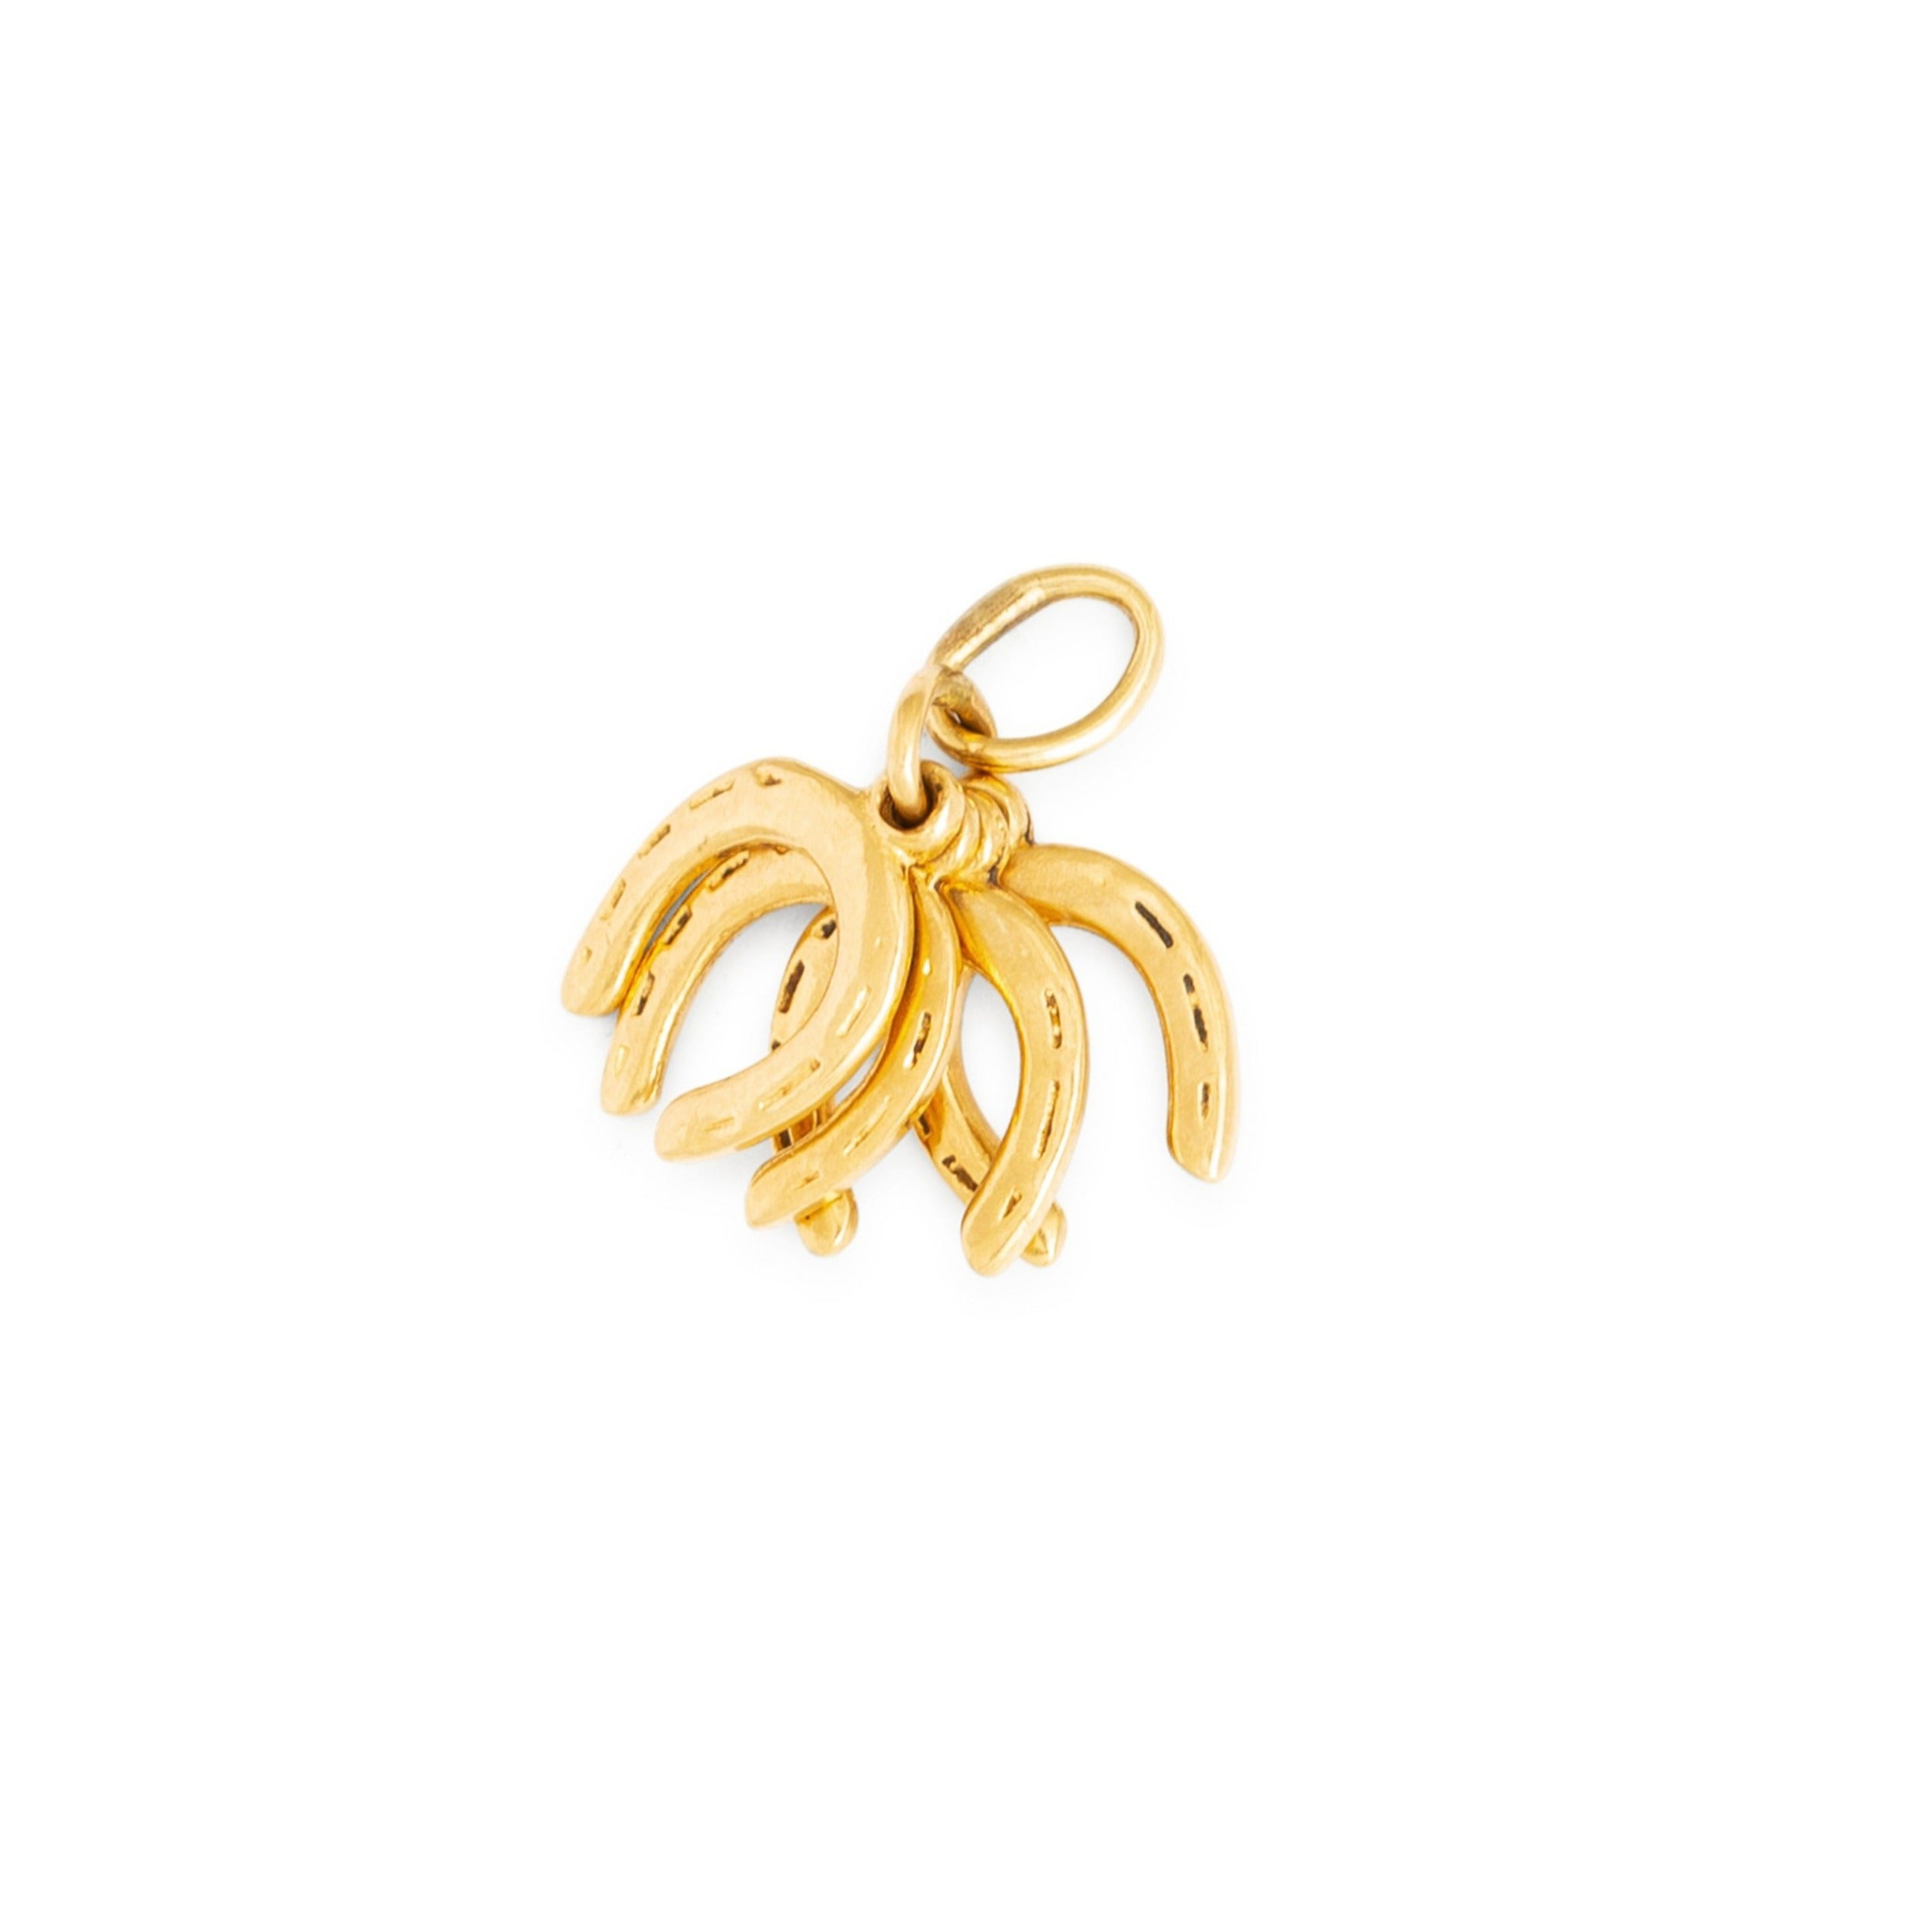 Four Horseshoe 10k Gold Charm